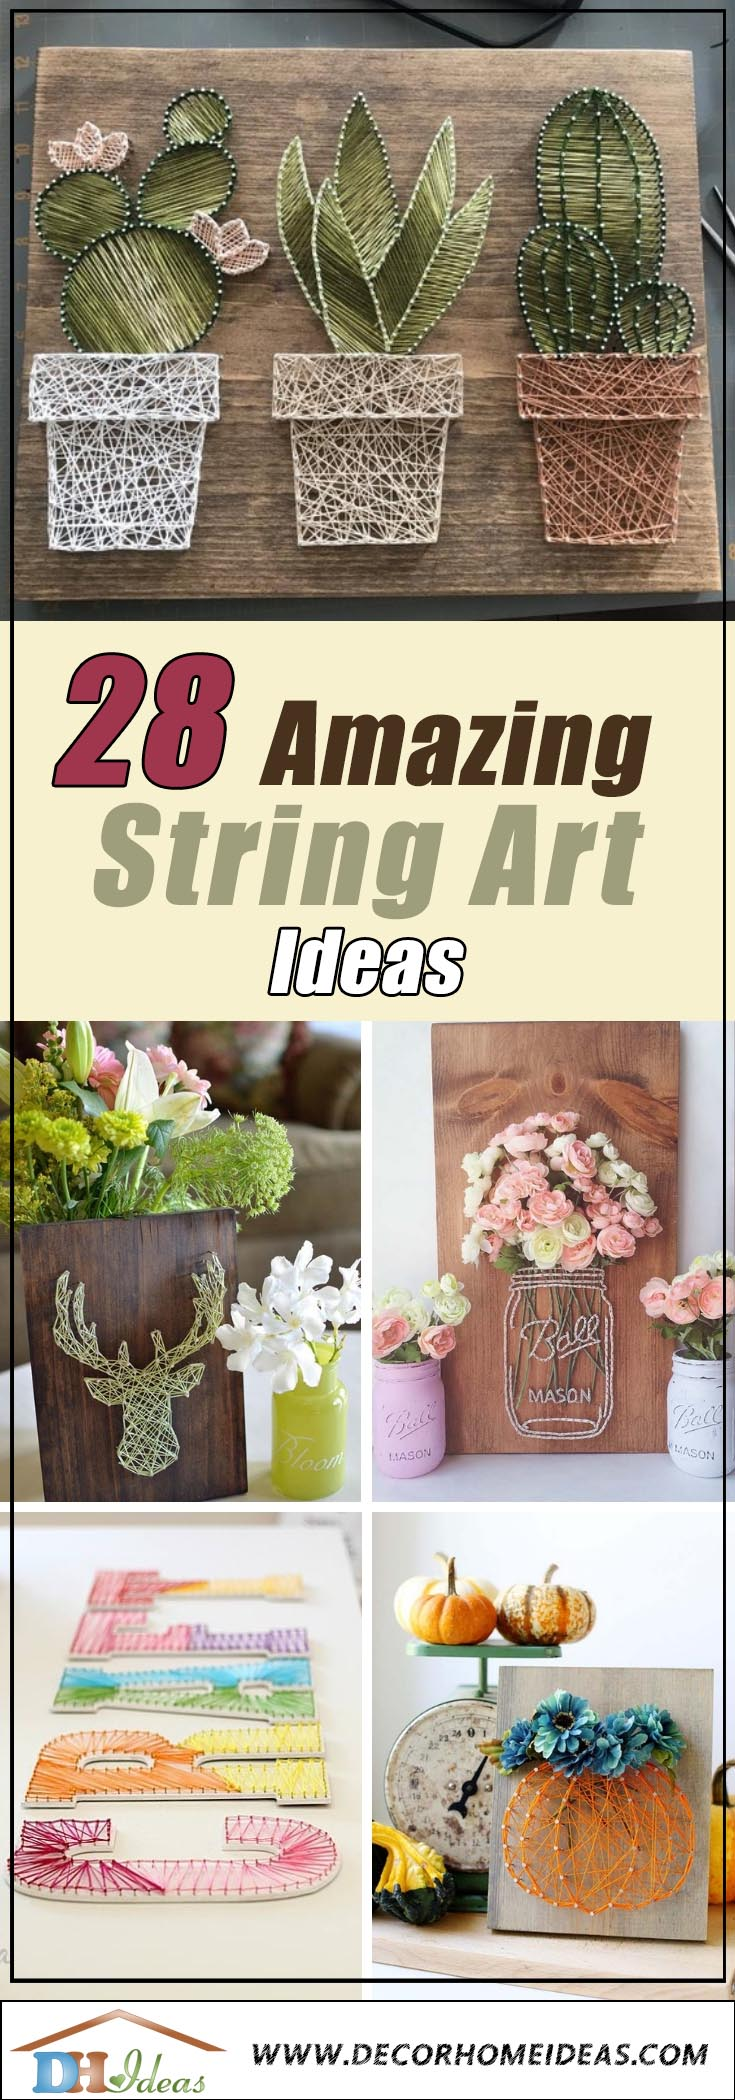 Best String Art Ideas #stringart #diy #stringartideas #decorhomeideas